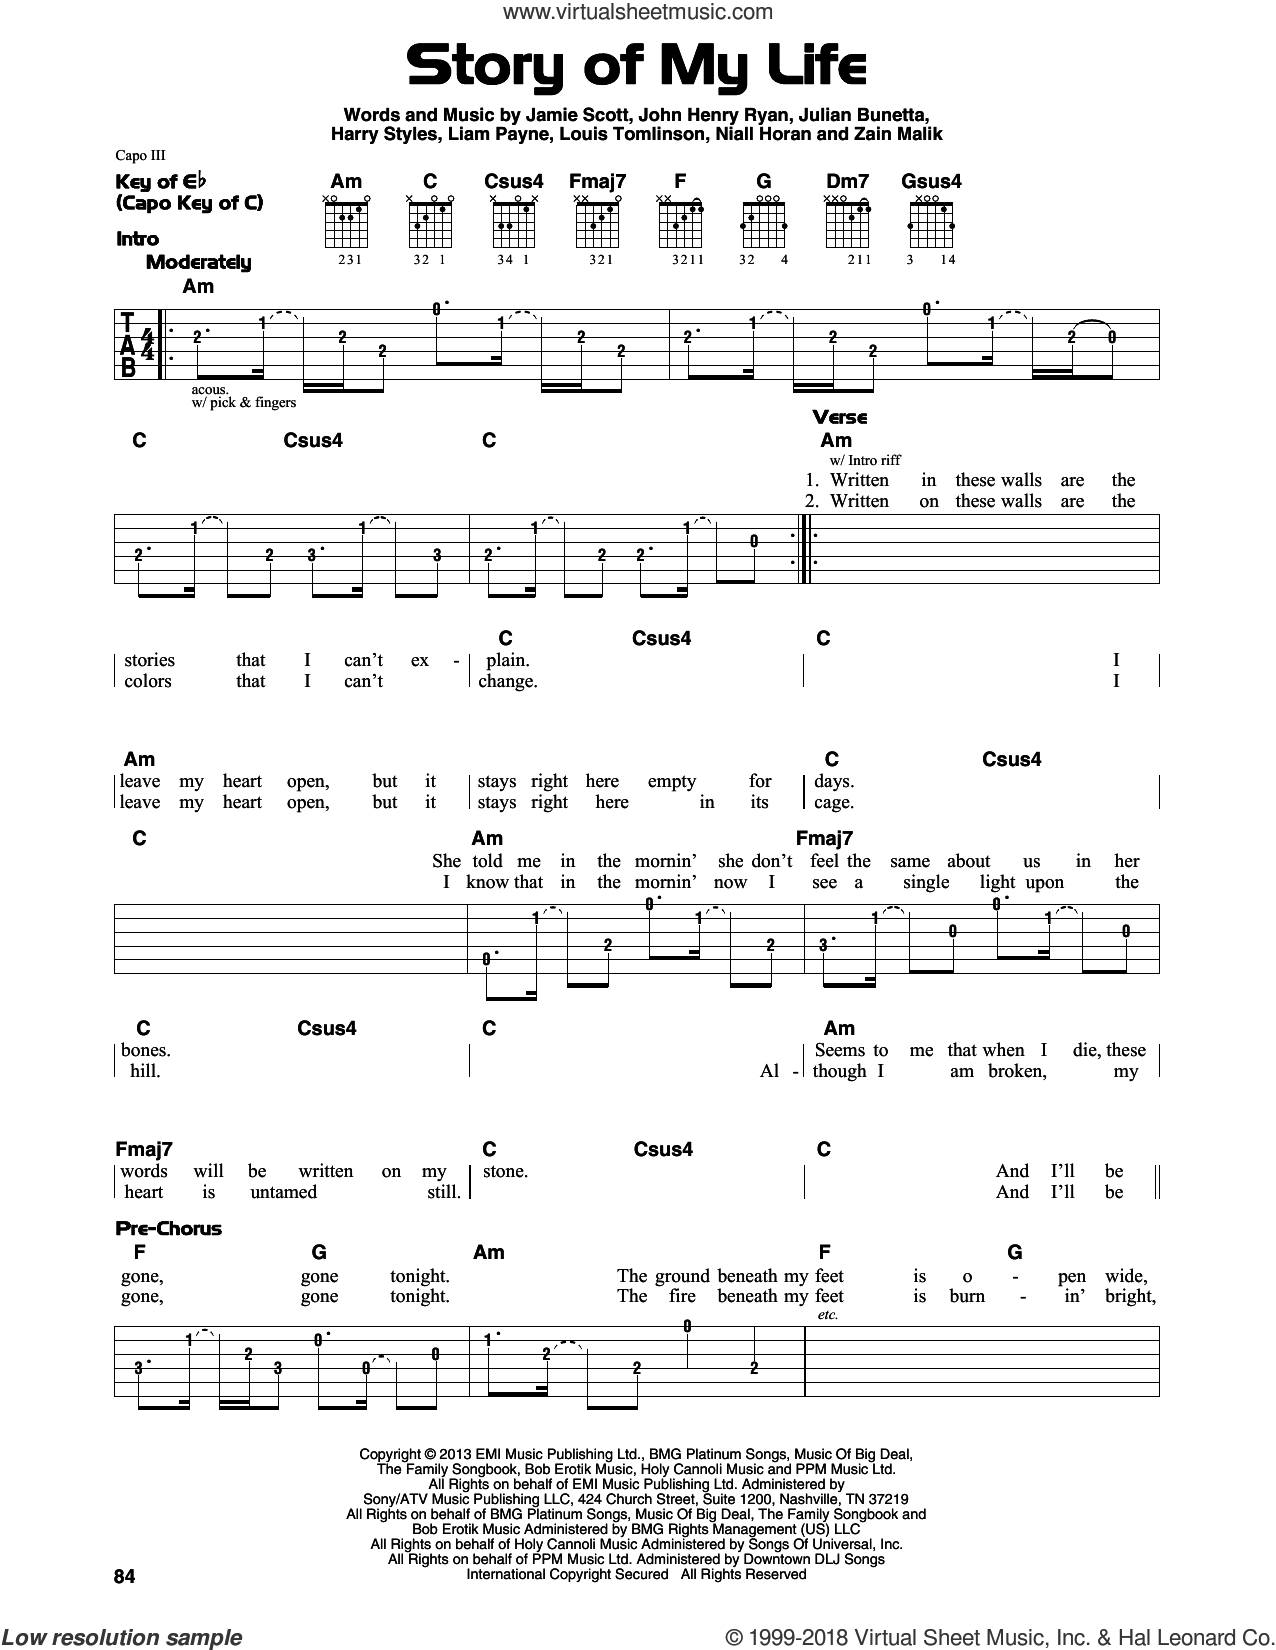 Story Of My Life sheet music for guitar solo (lead sheet) by One Direction, Harry Styles, Jamie Scott, Julian Bunetta, Liam Payne, Louis Tomlinson and Niall Horan. Score Image Preview.